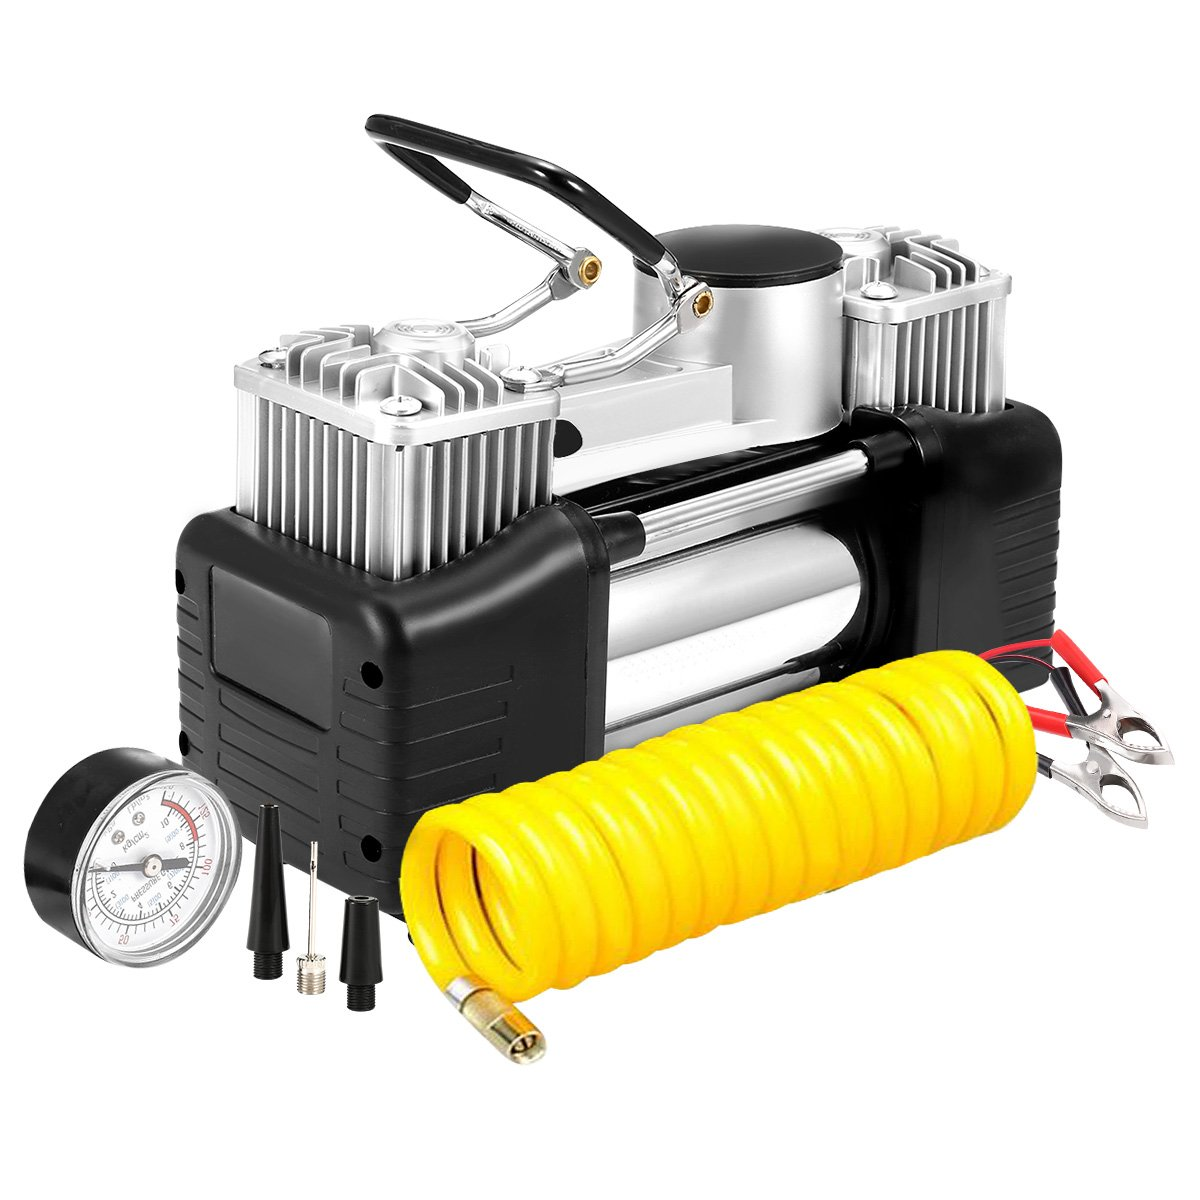 AUDEW Portable Air Compressor Pump, 150PSI Heavy Duty Dual Cylinder Air Pump, Auto 12V Tire Inflator for Car, Truck, RV, Bicycle and Other Inflatables